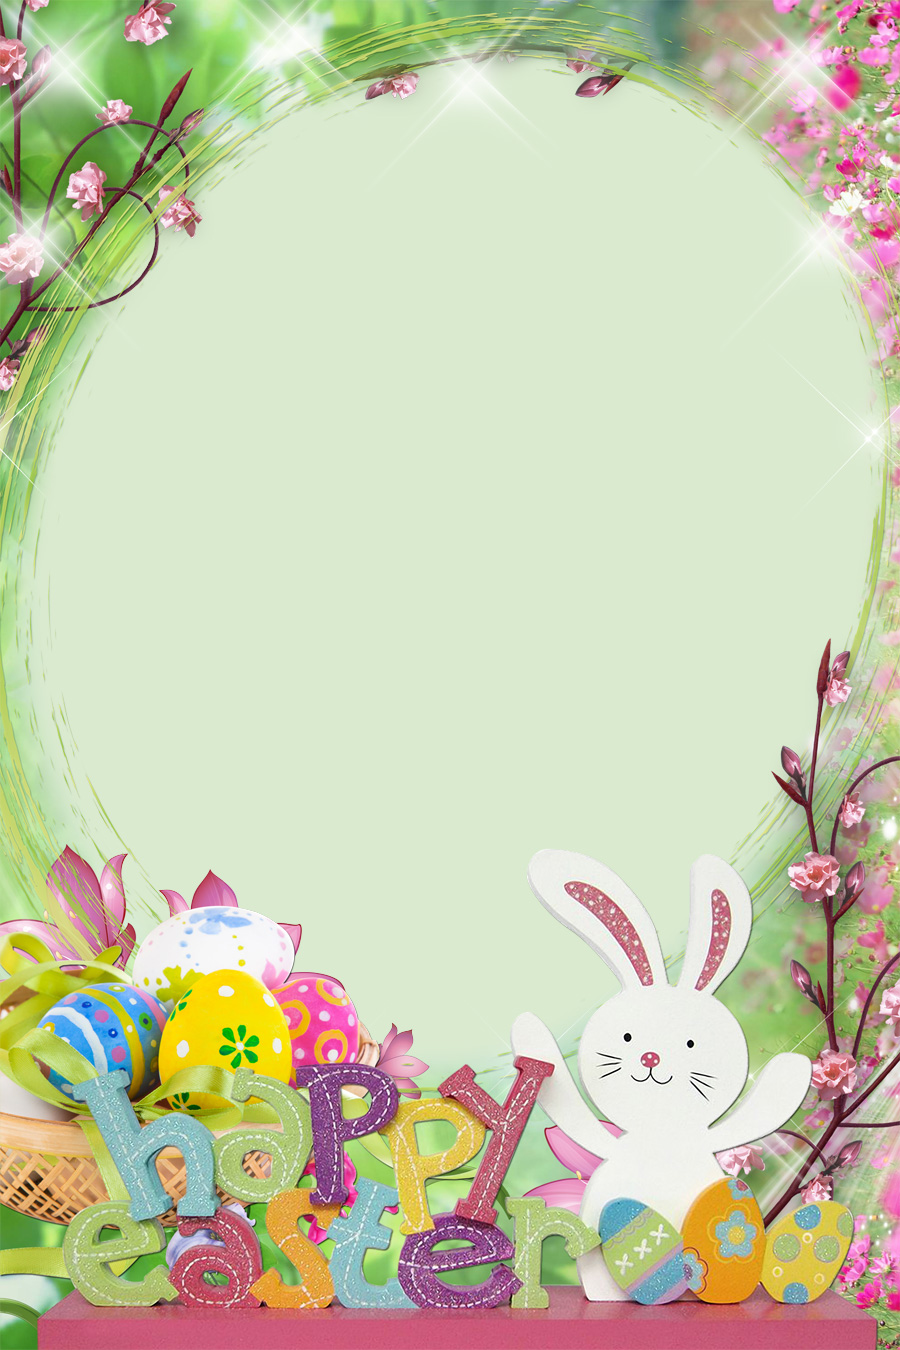 happy easter photo frames pick the one you like